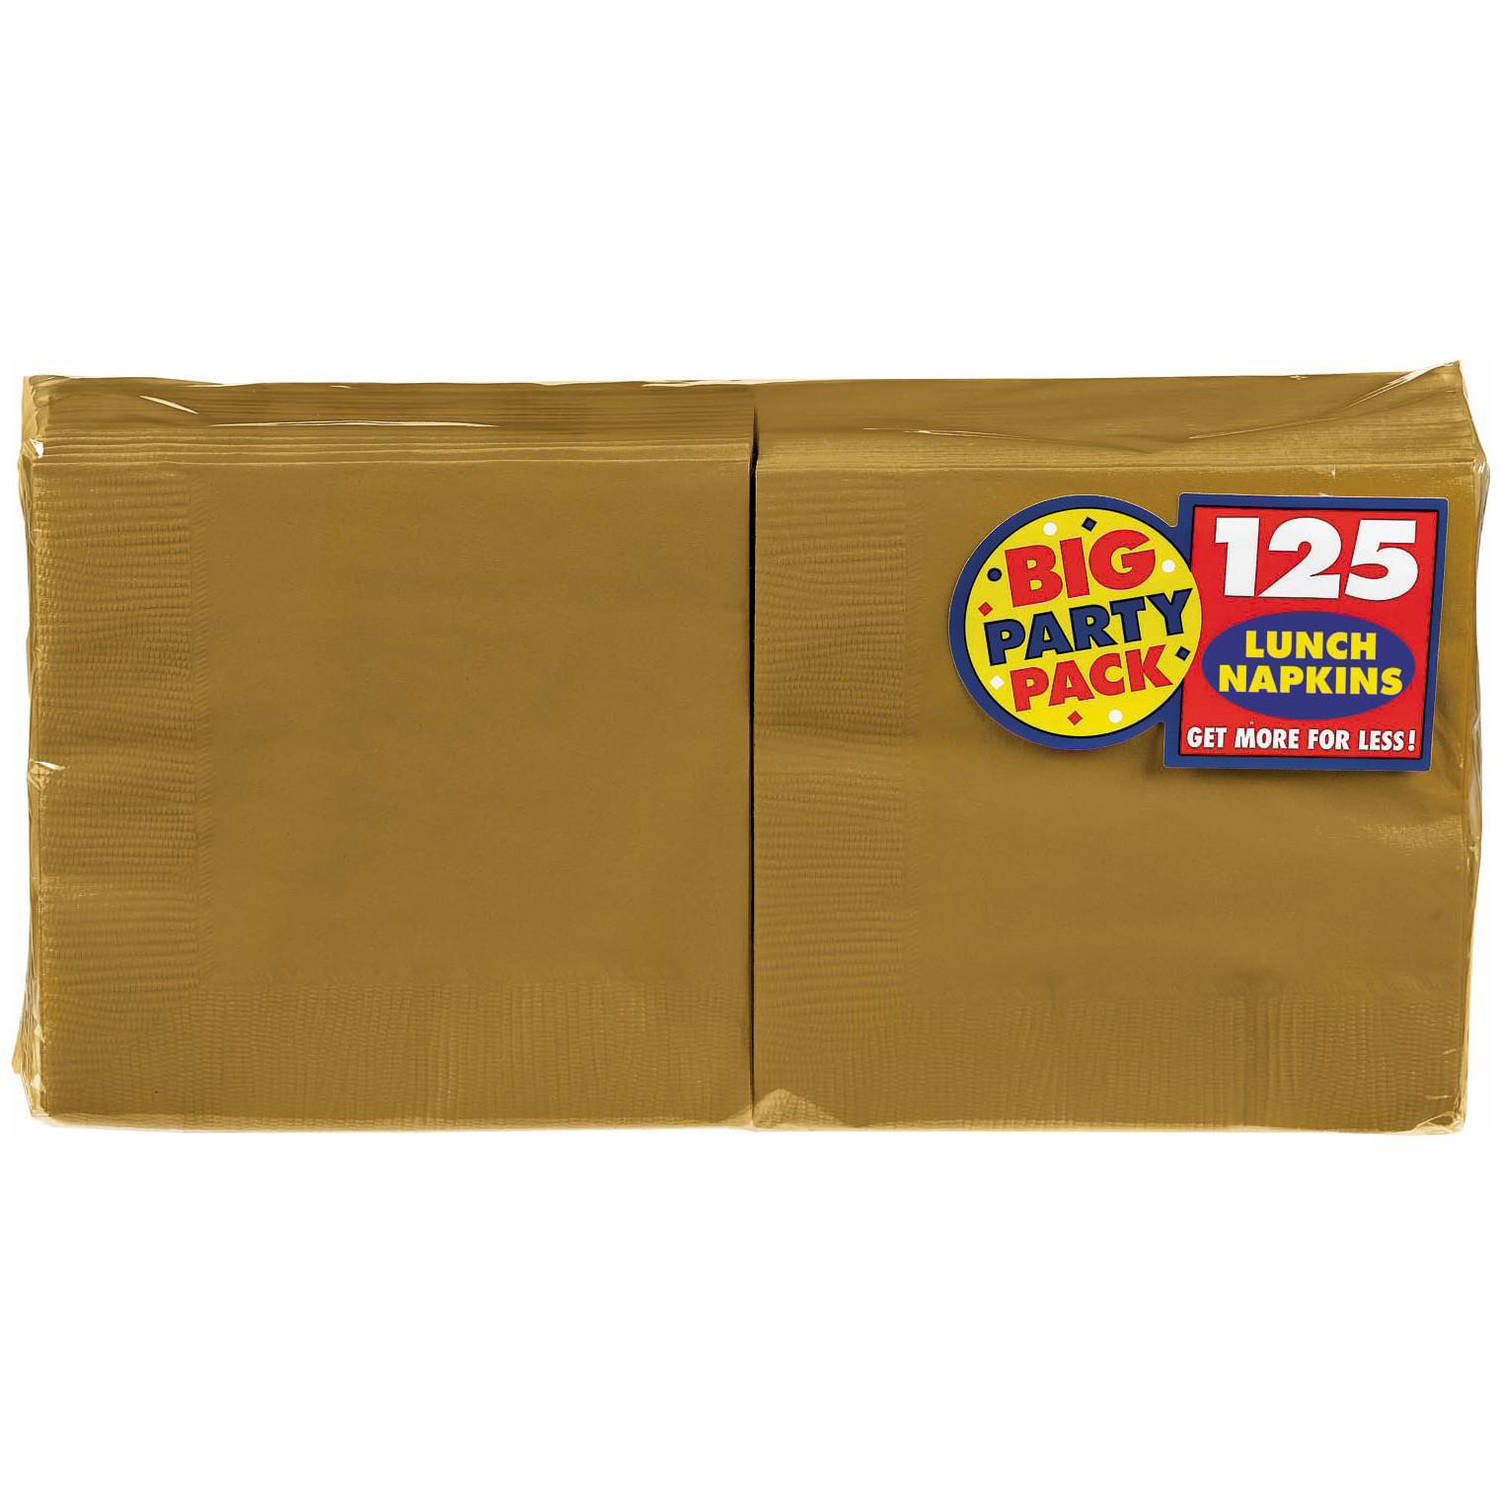 Gold Big Party Pack - Lunch Napkins (125)